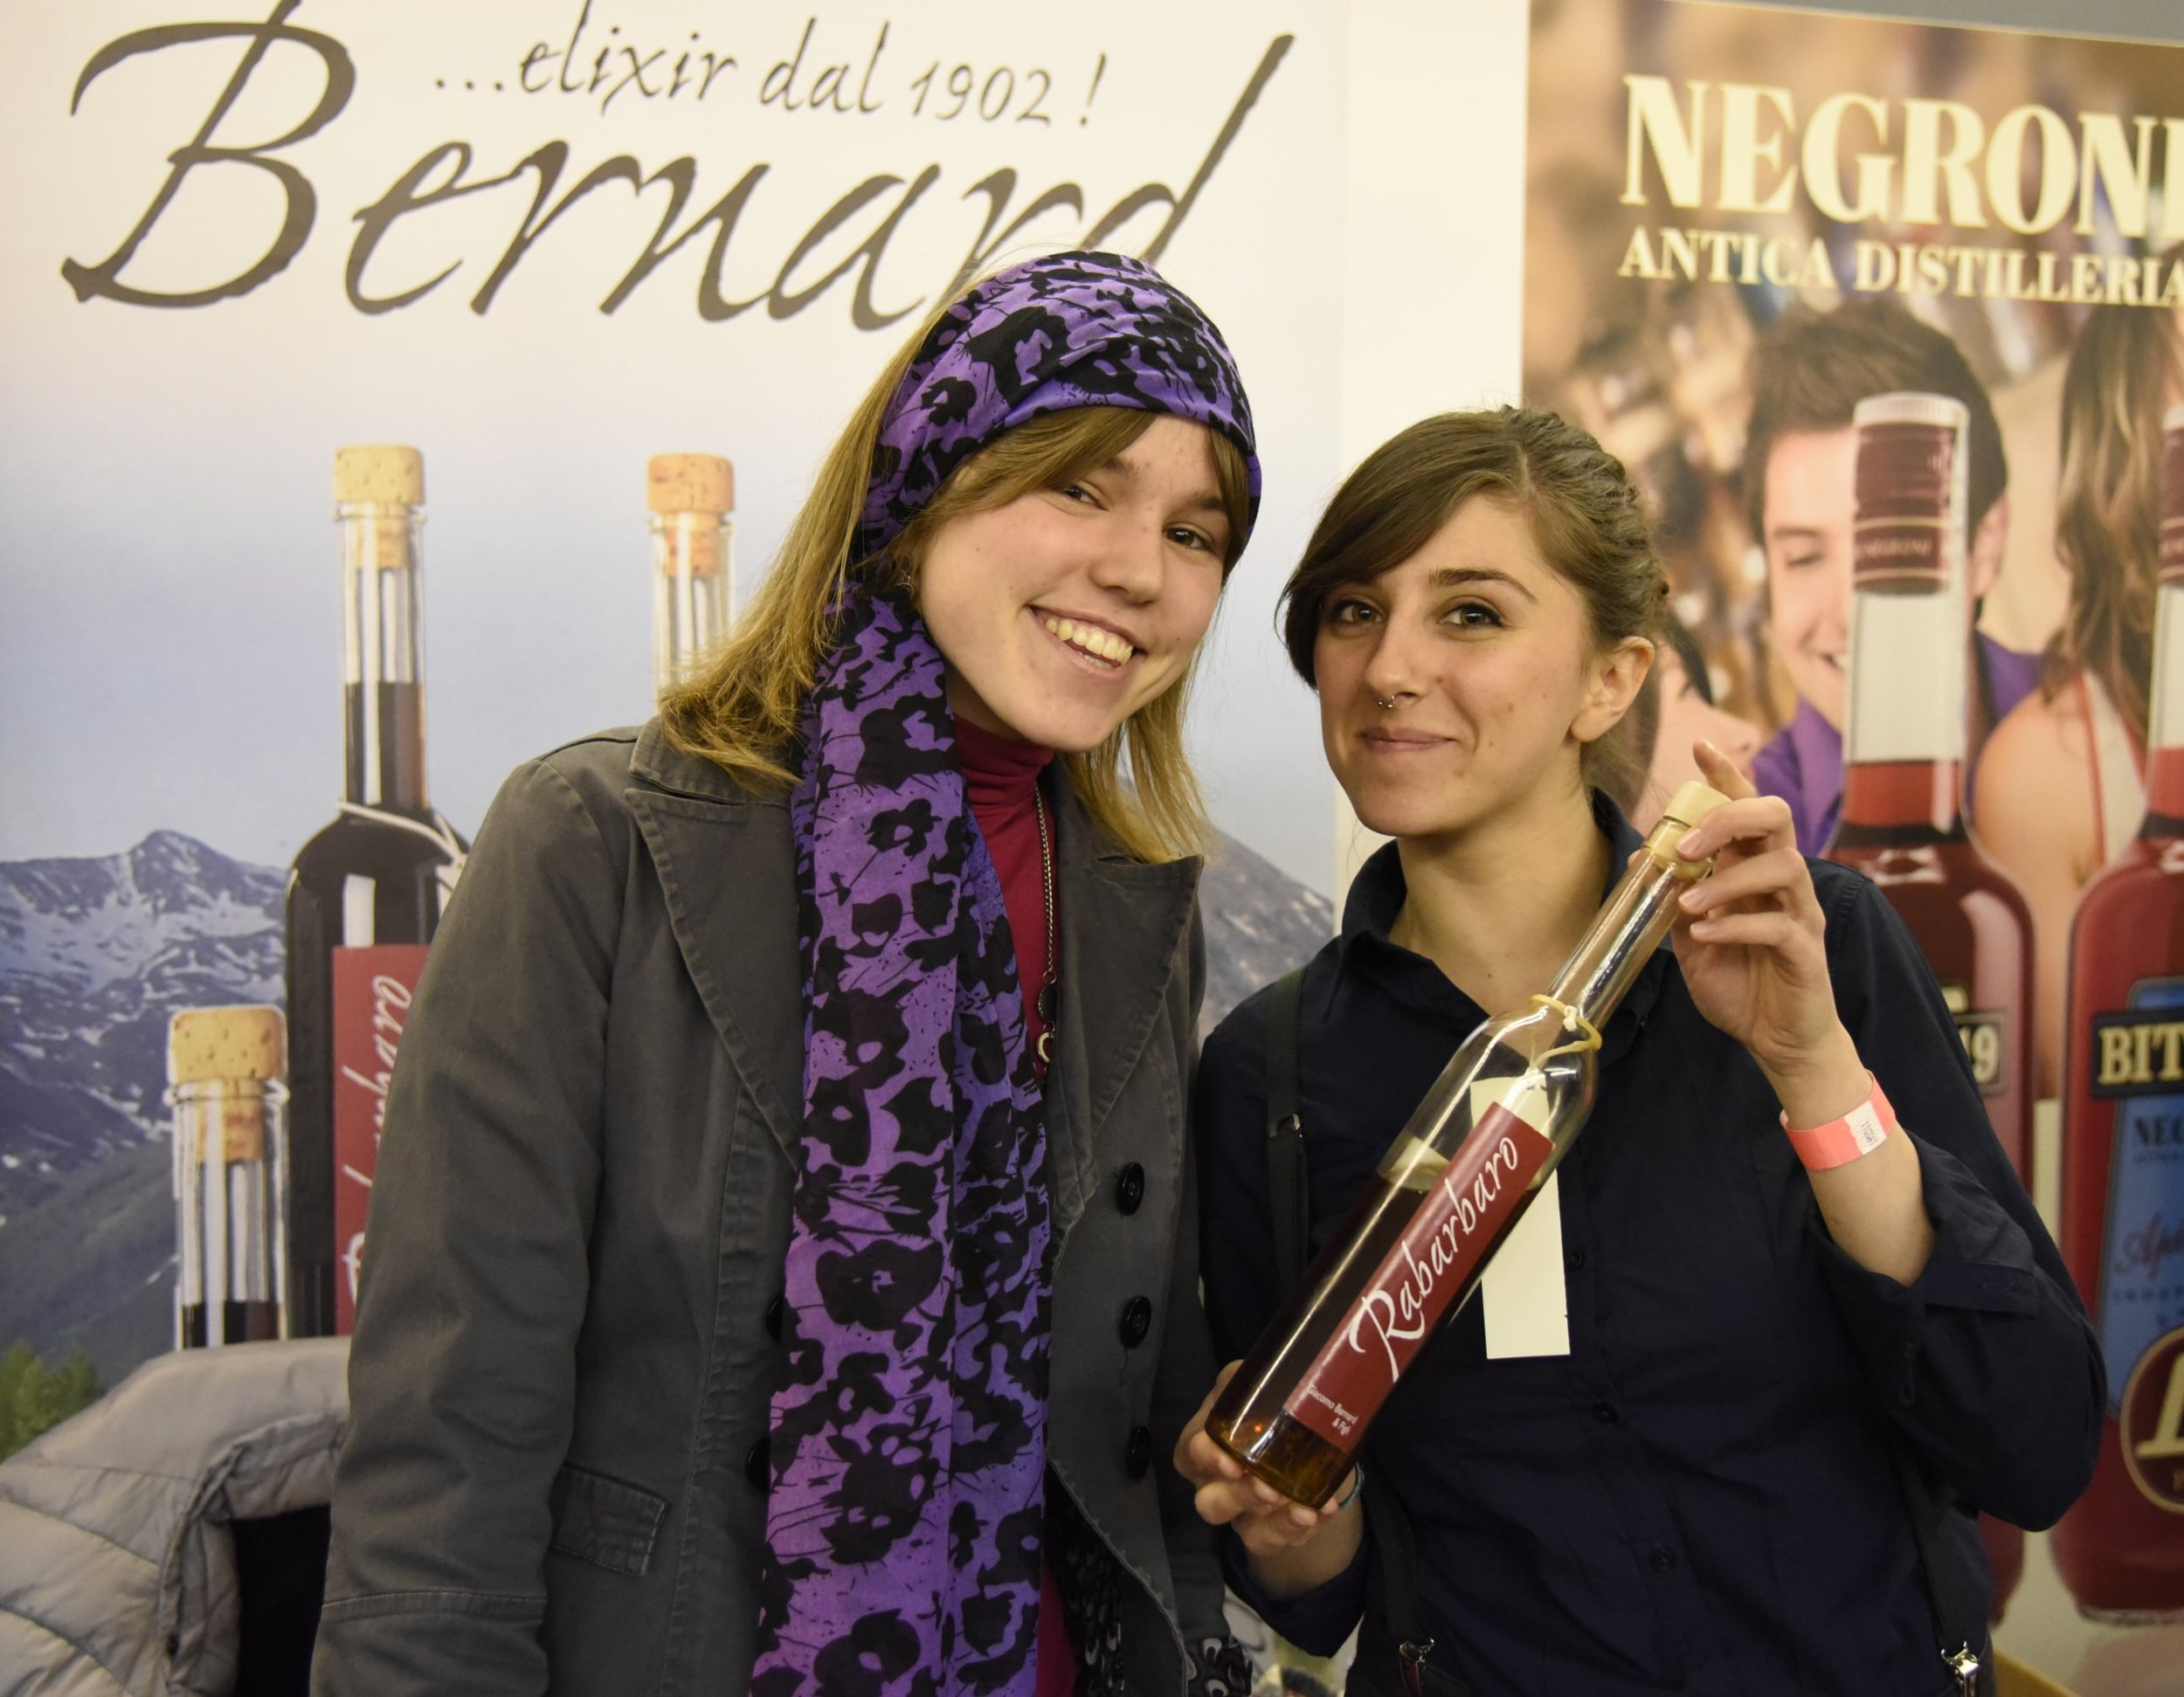 The ladies at the Bernard stand